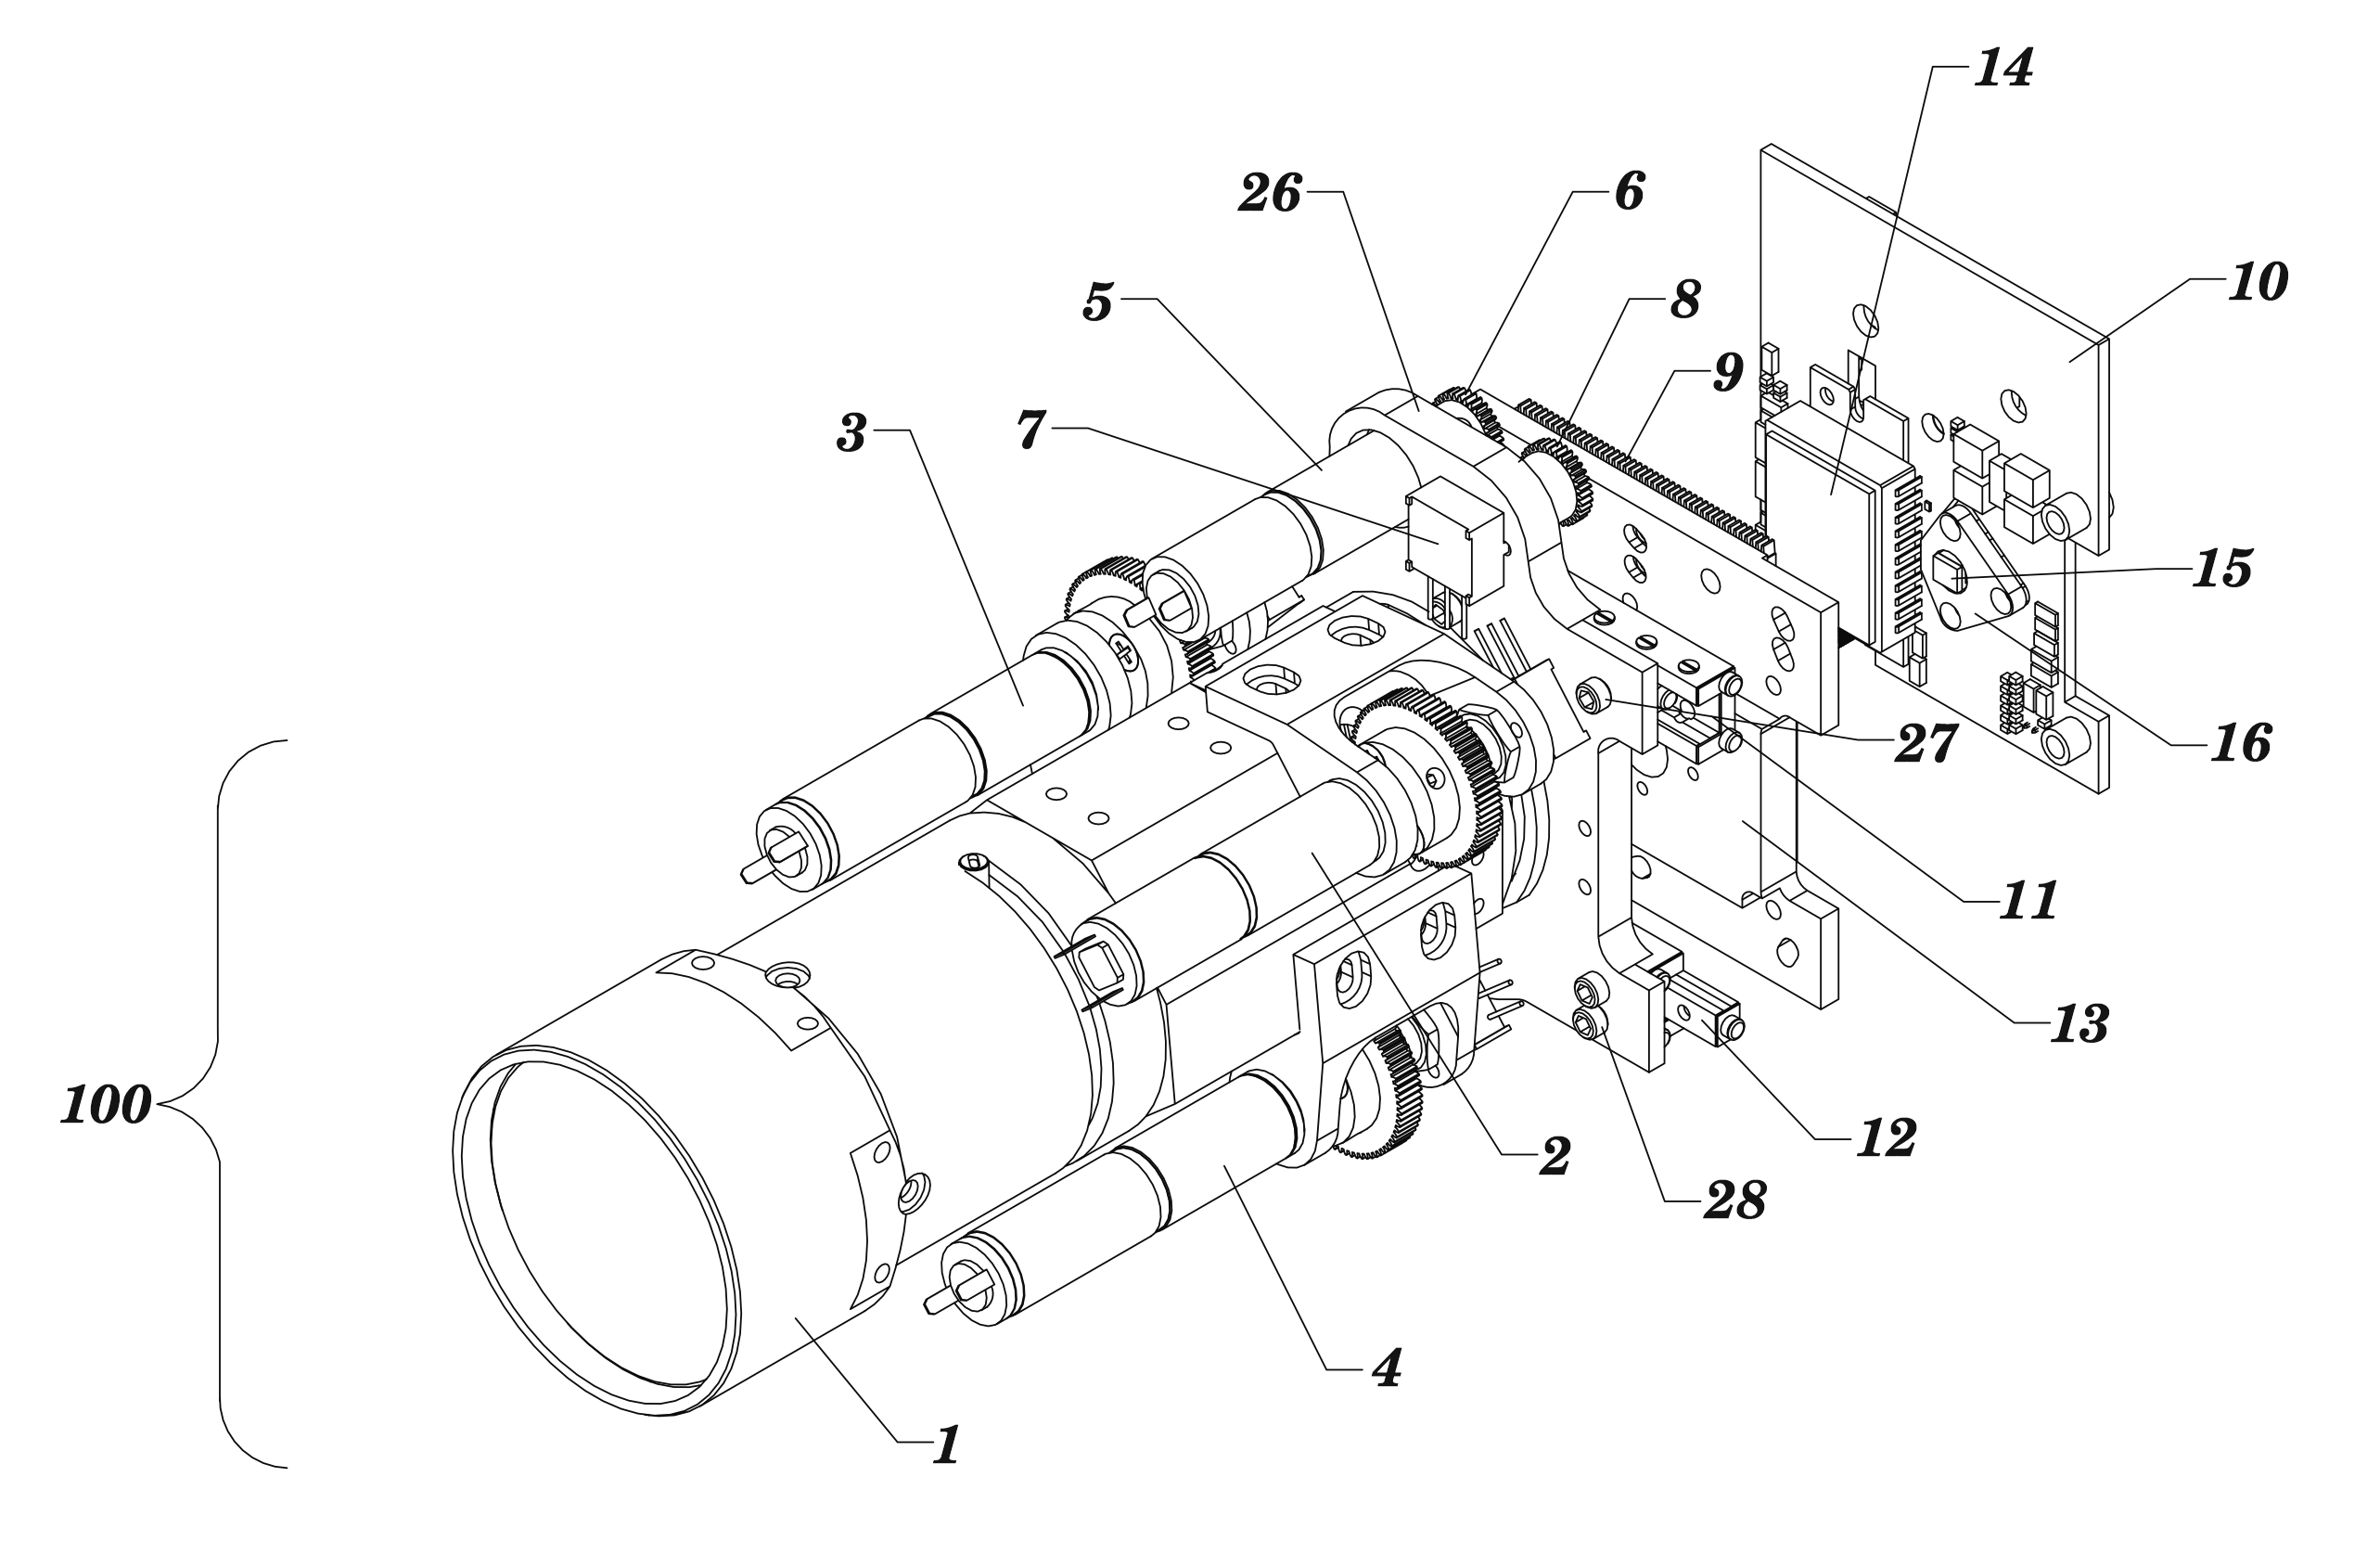 16_ptiserviceco_patent_drawing_mechanical.png